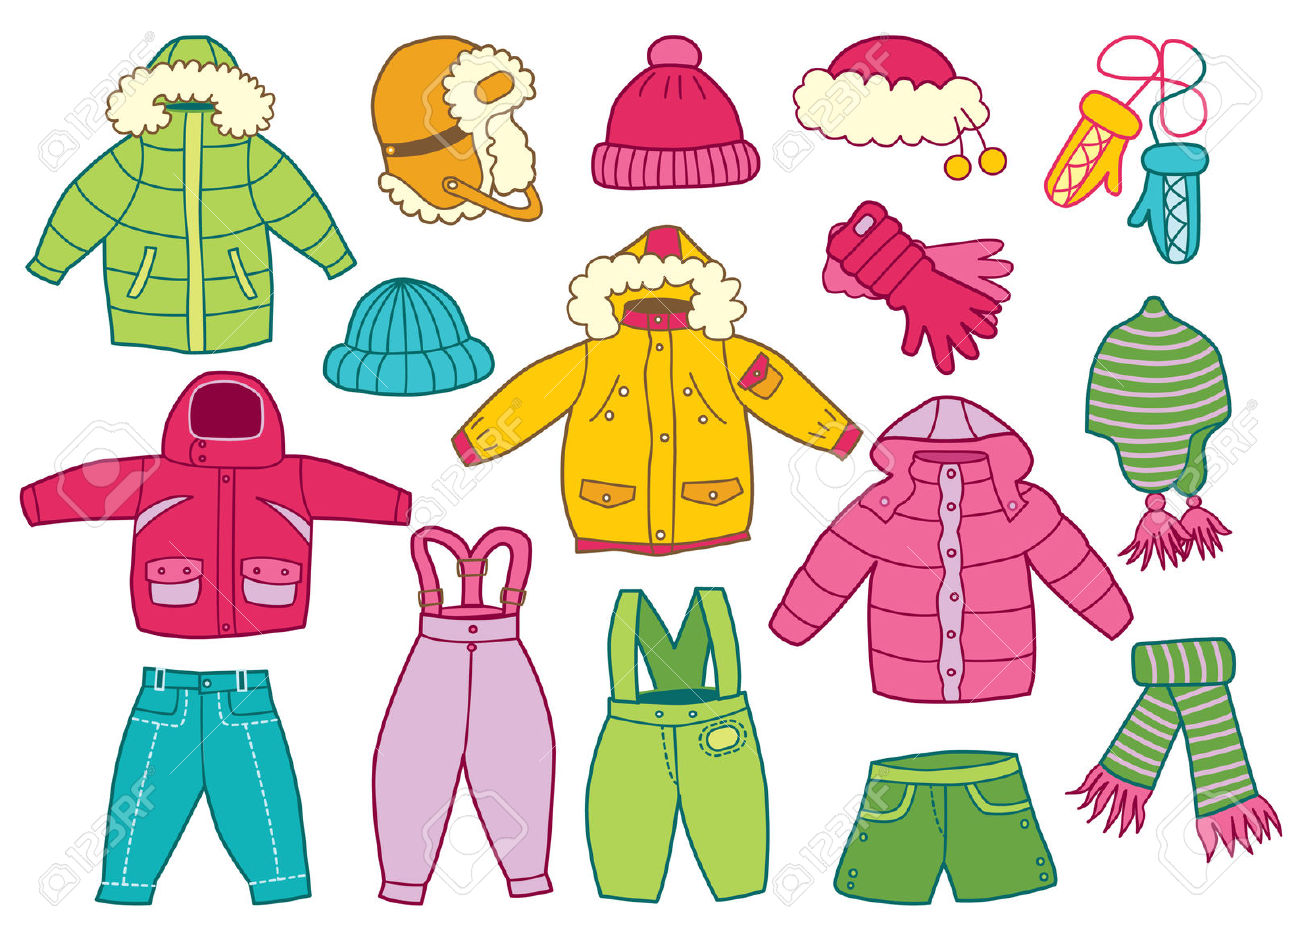 Winter clipart winter wear Winter clothes Clipart Collection clothes